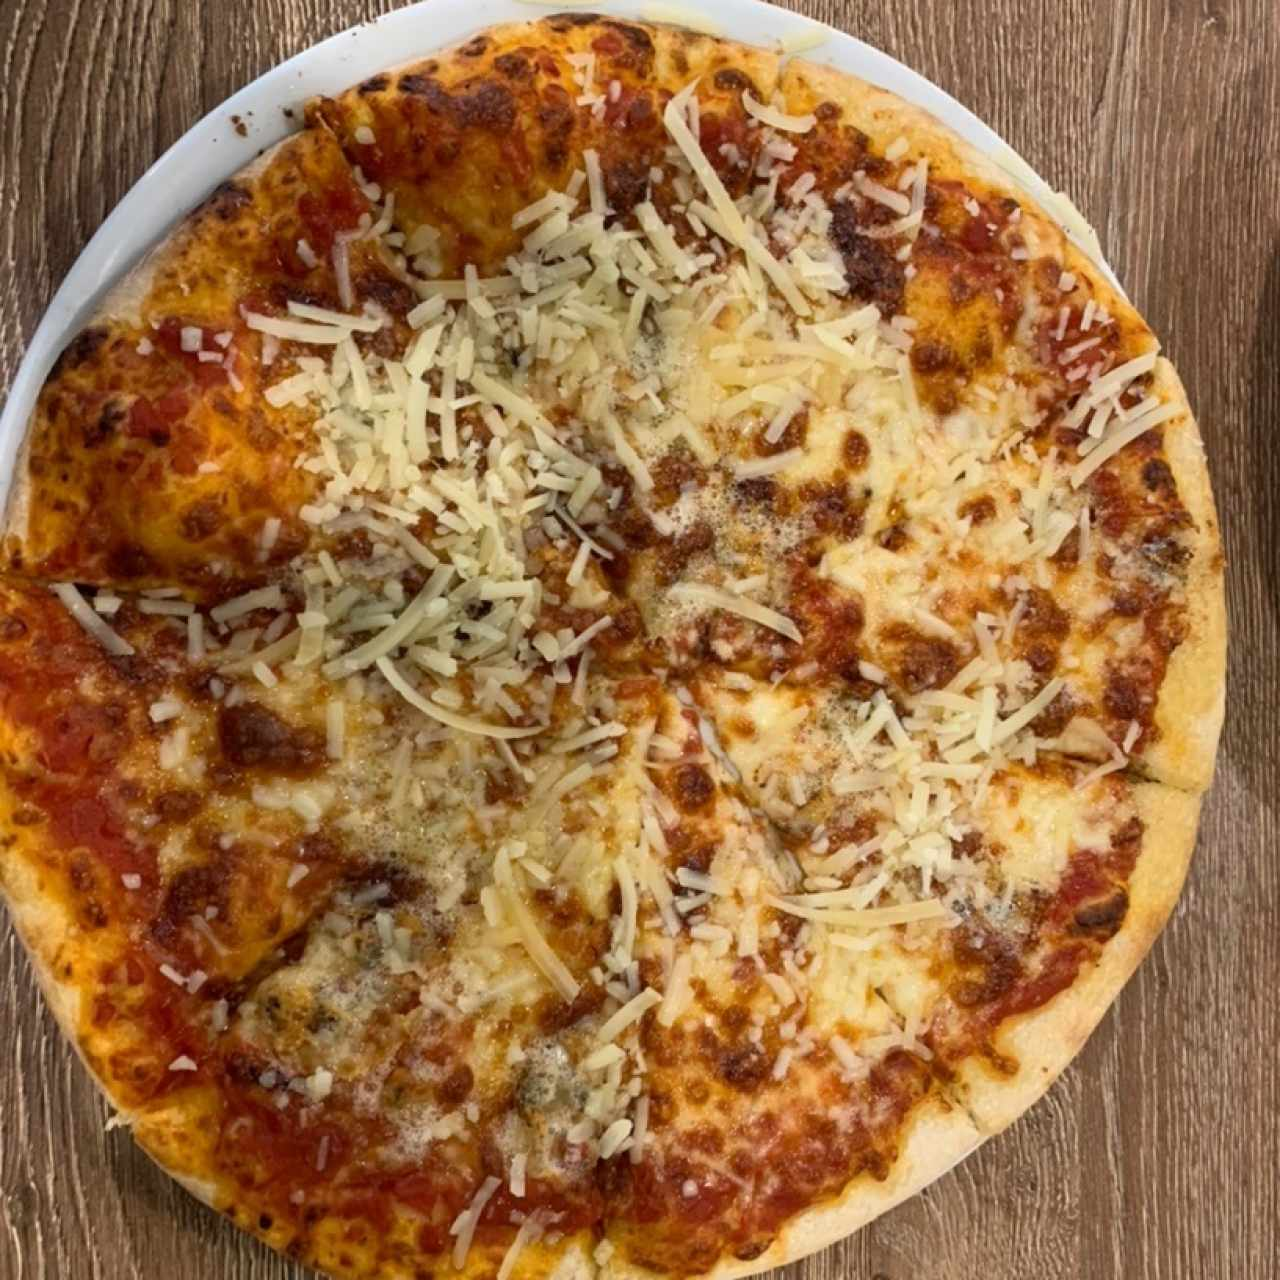 Pizza de quesos